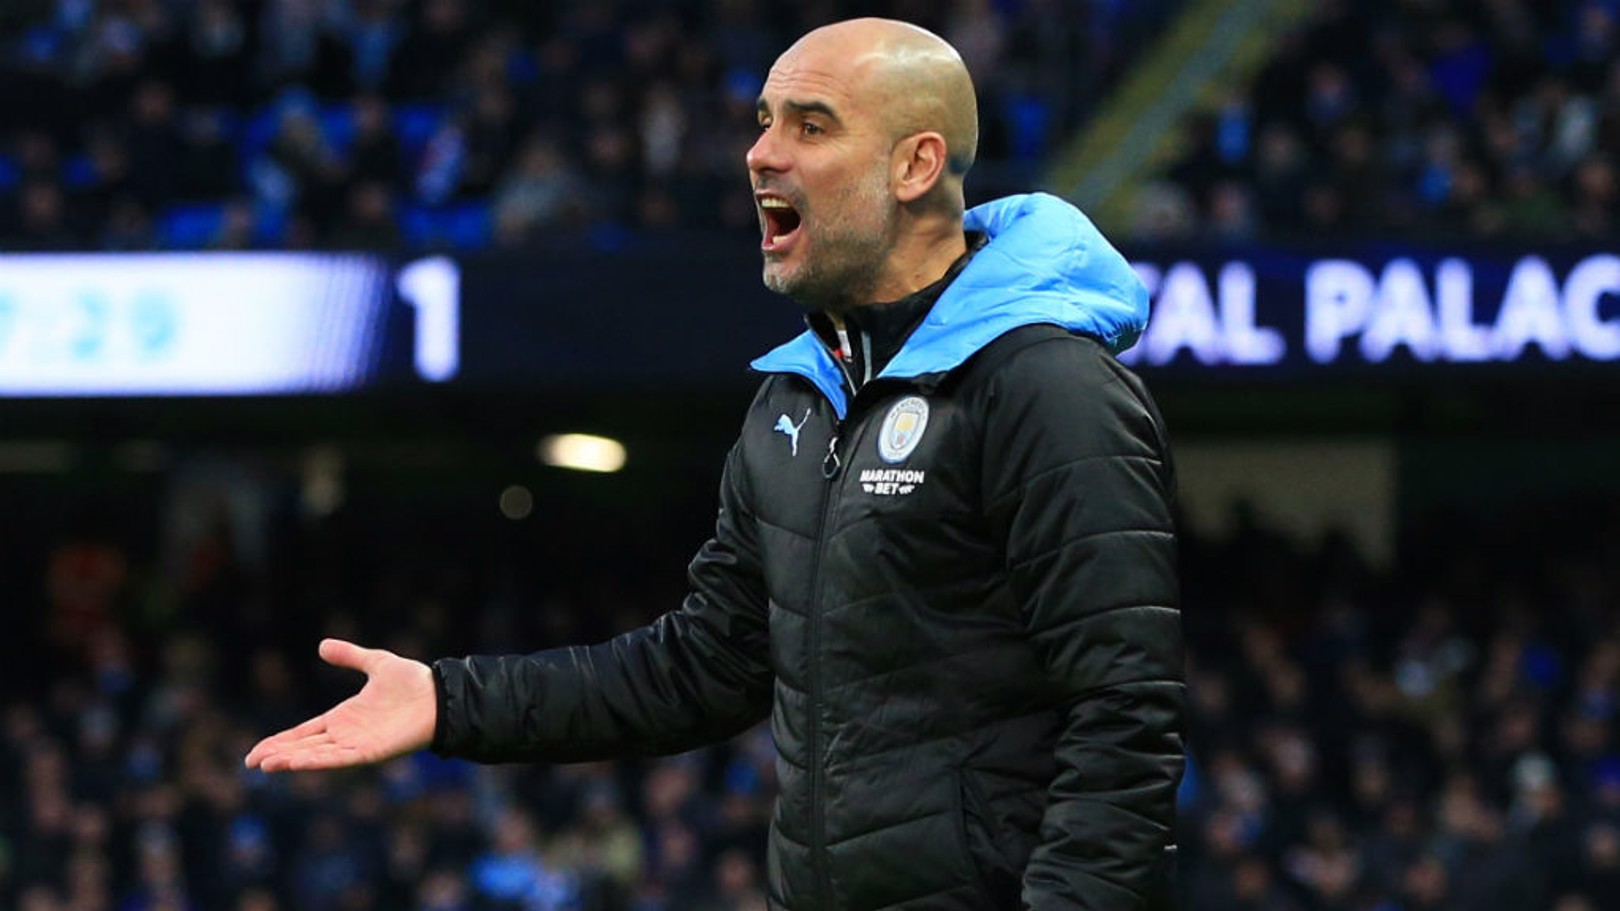 PEP TALK: The boss shouts out his instructions from the technical area.